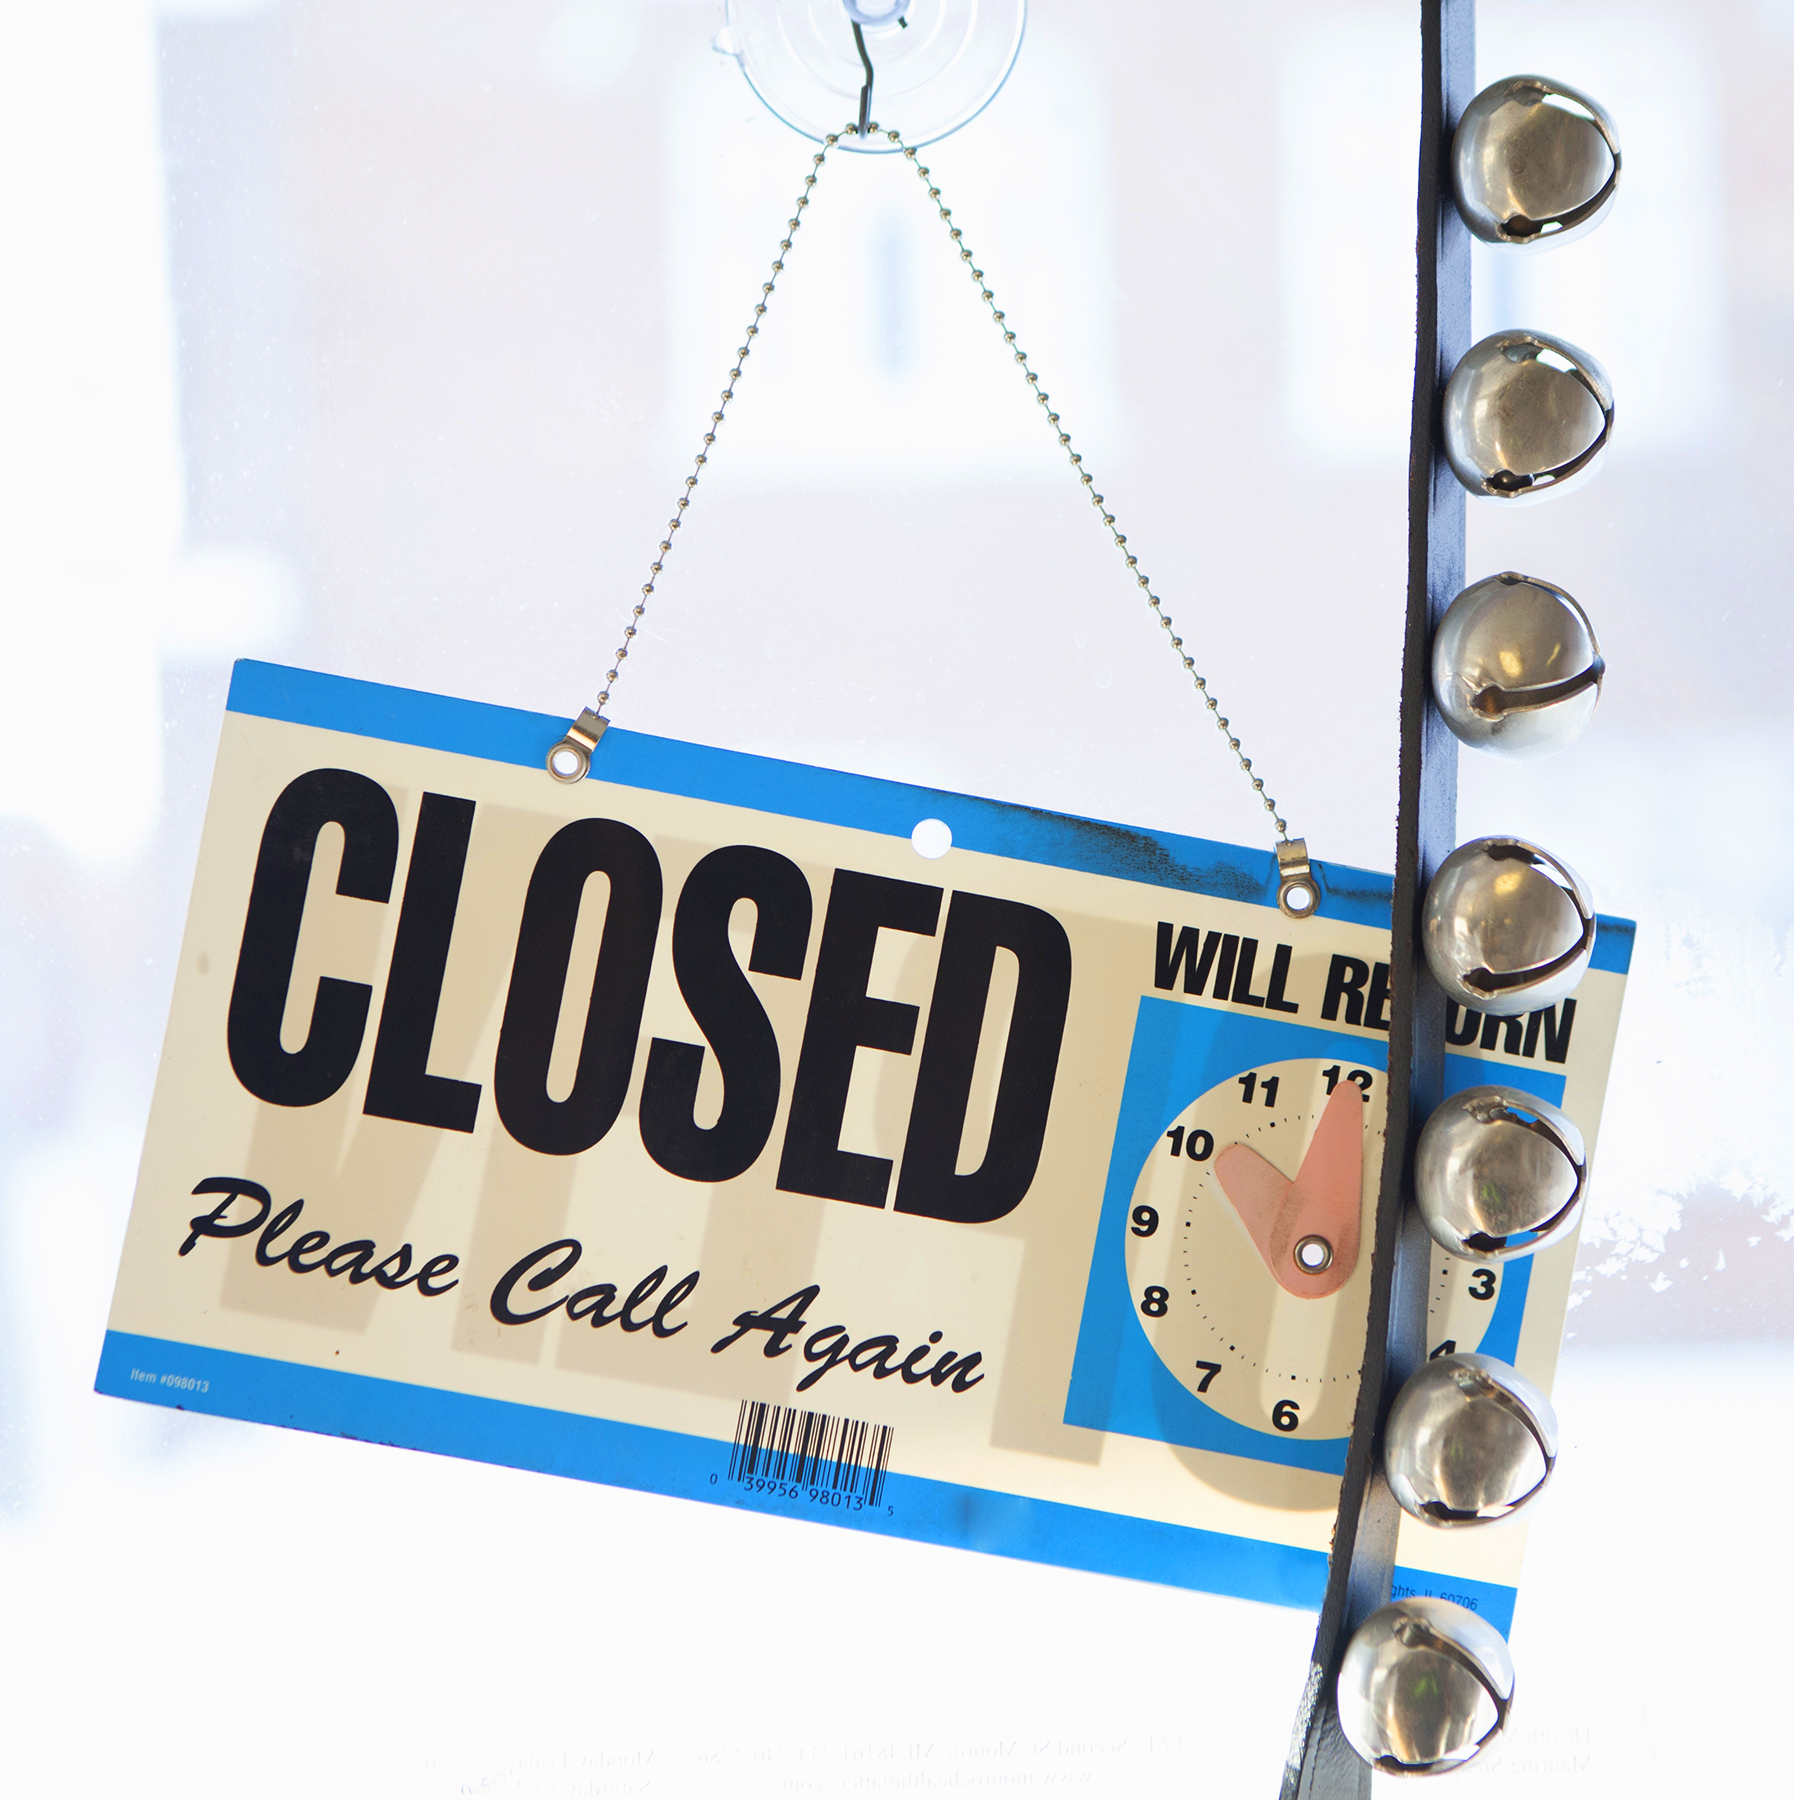 Closed sign at store